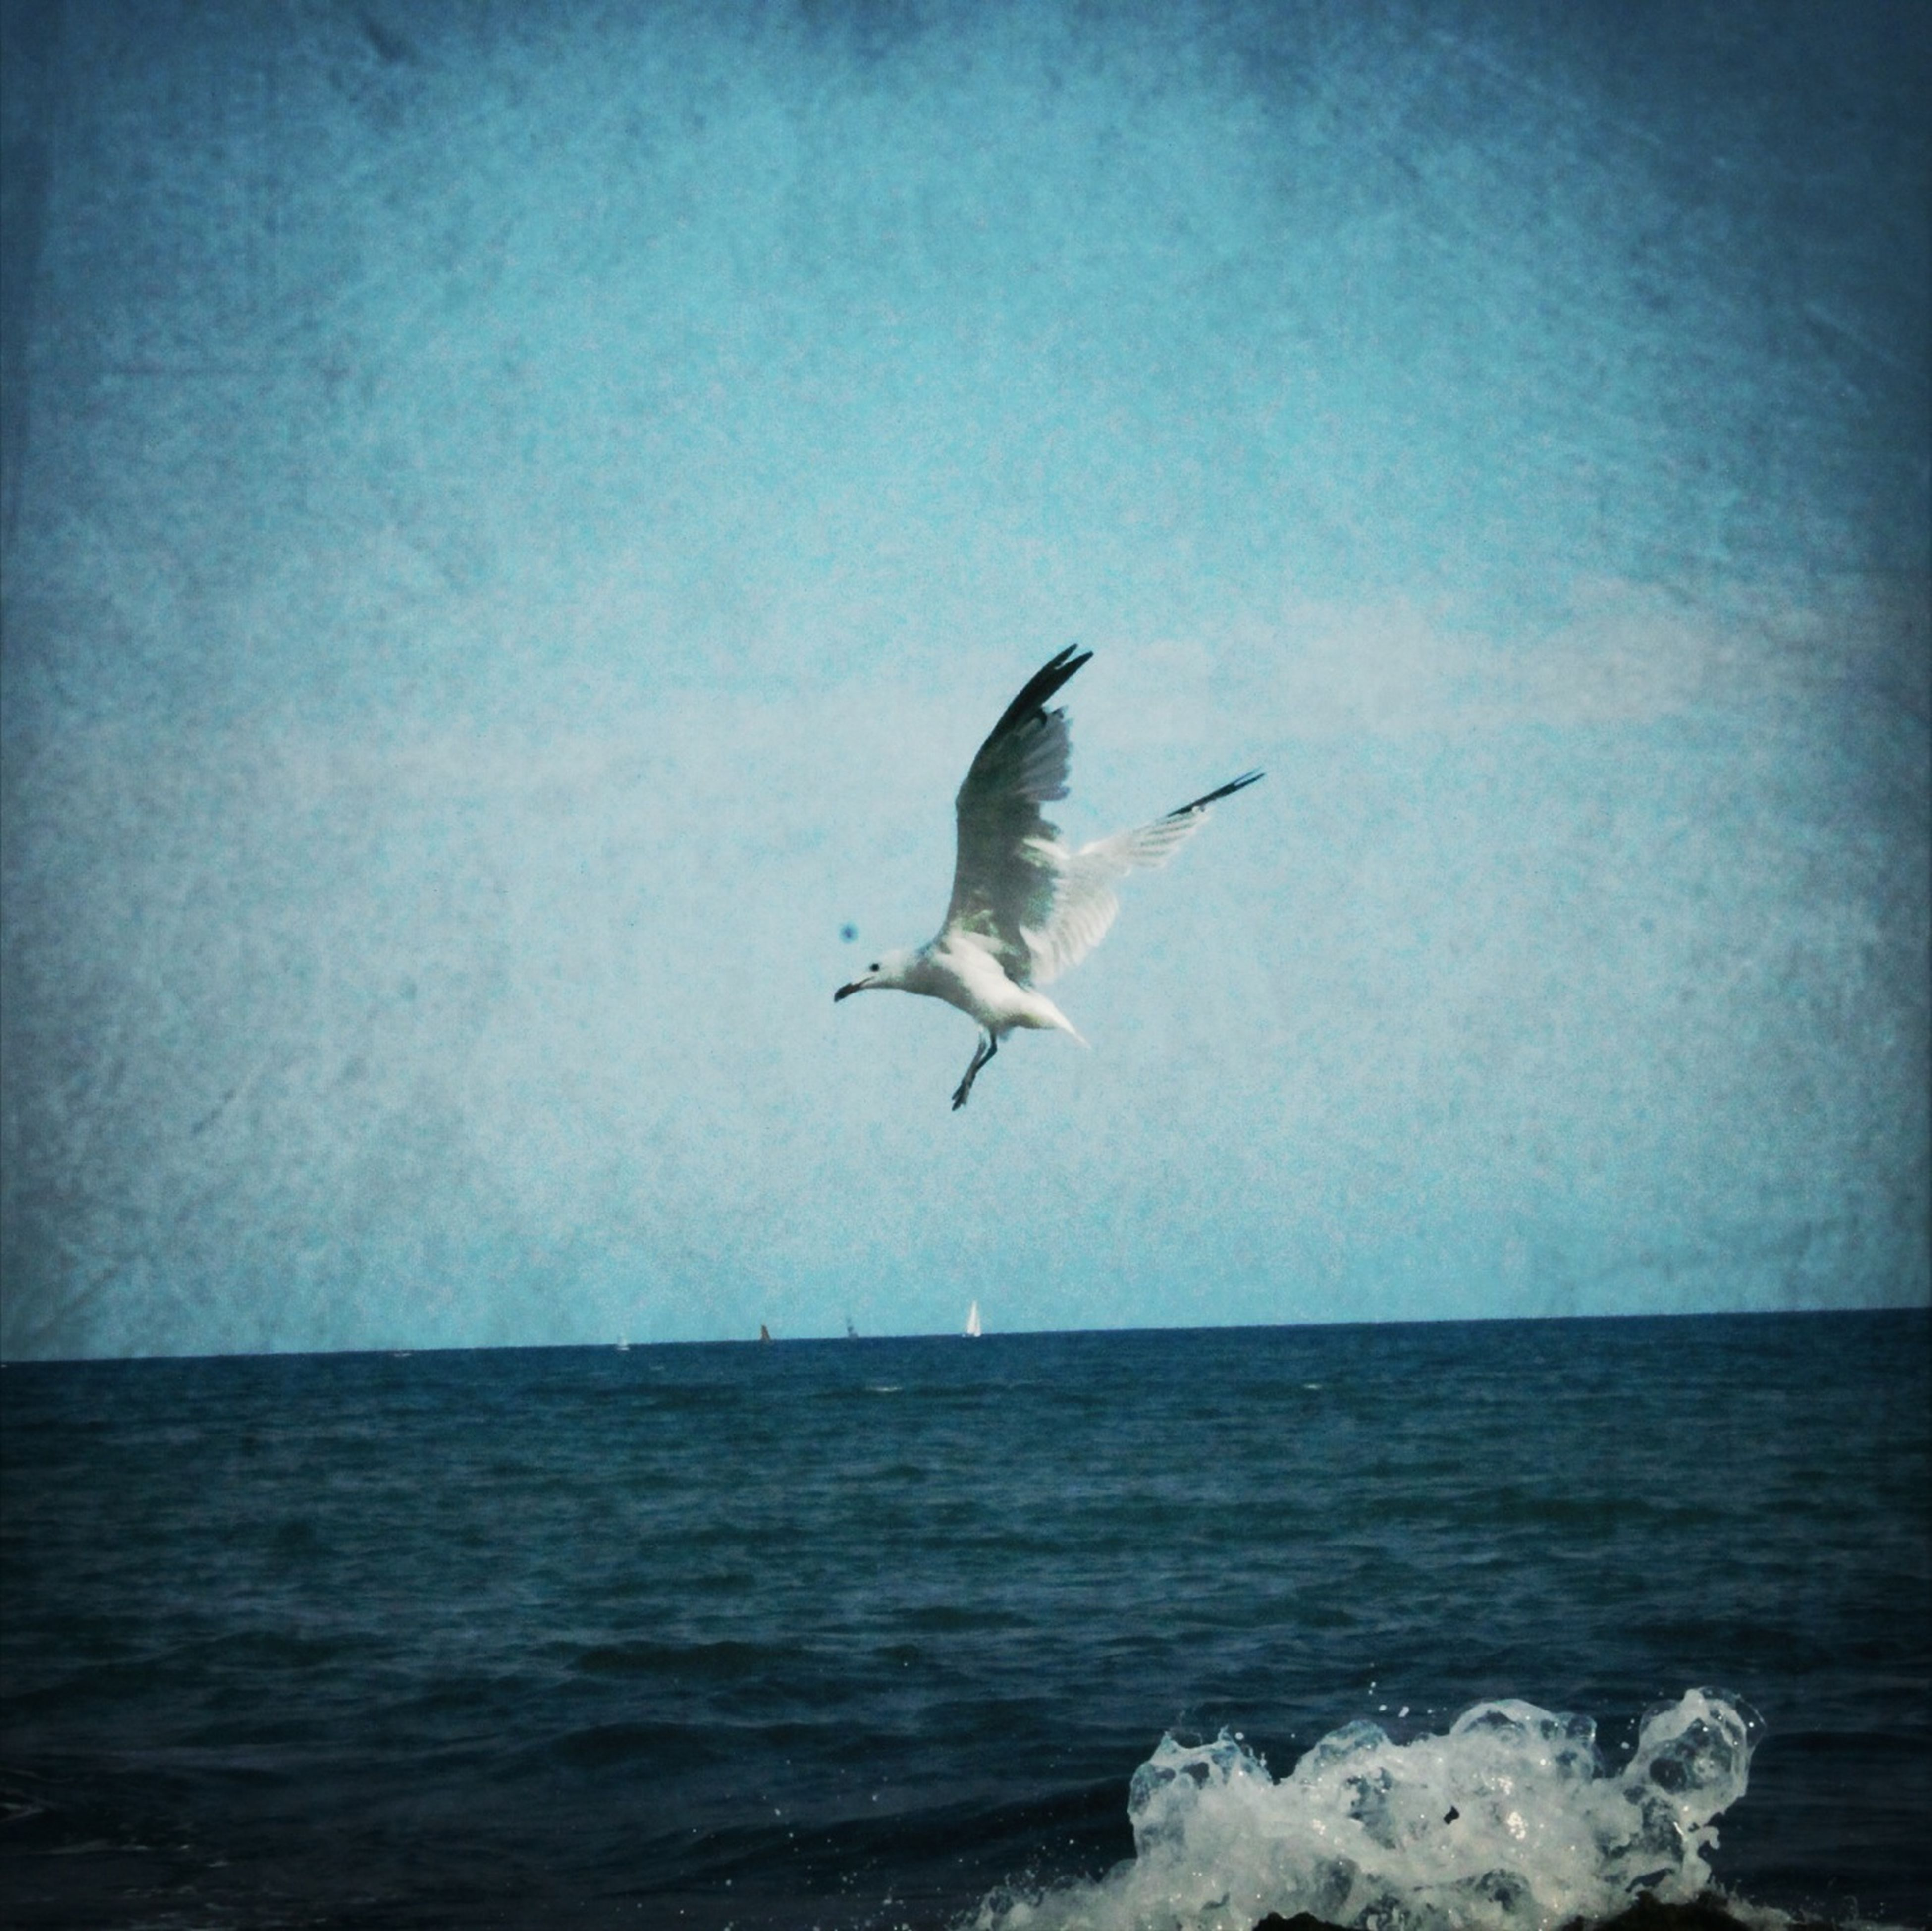 bird, flying, animal themes, animals in the wild, sea, spread wings, seagull, wildlife, water, one animal, waterfront, horizon over water, nature, mid-air, sky, beauty in nature, motion, scenics, tranquil scene, tranquility